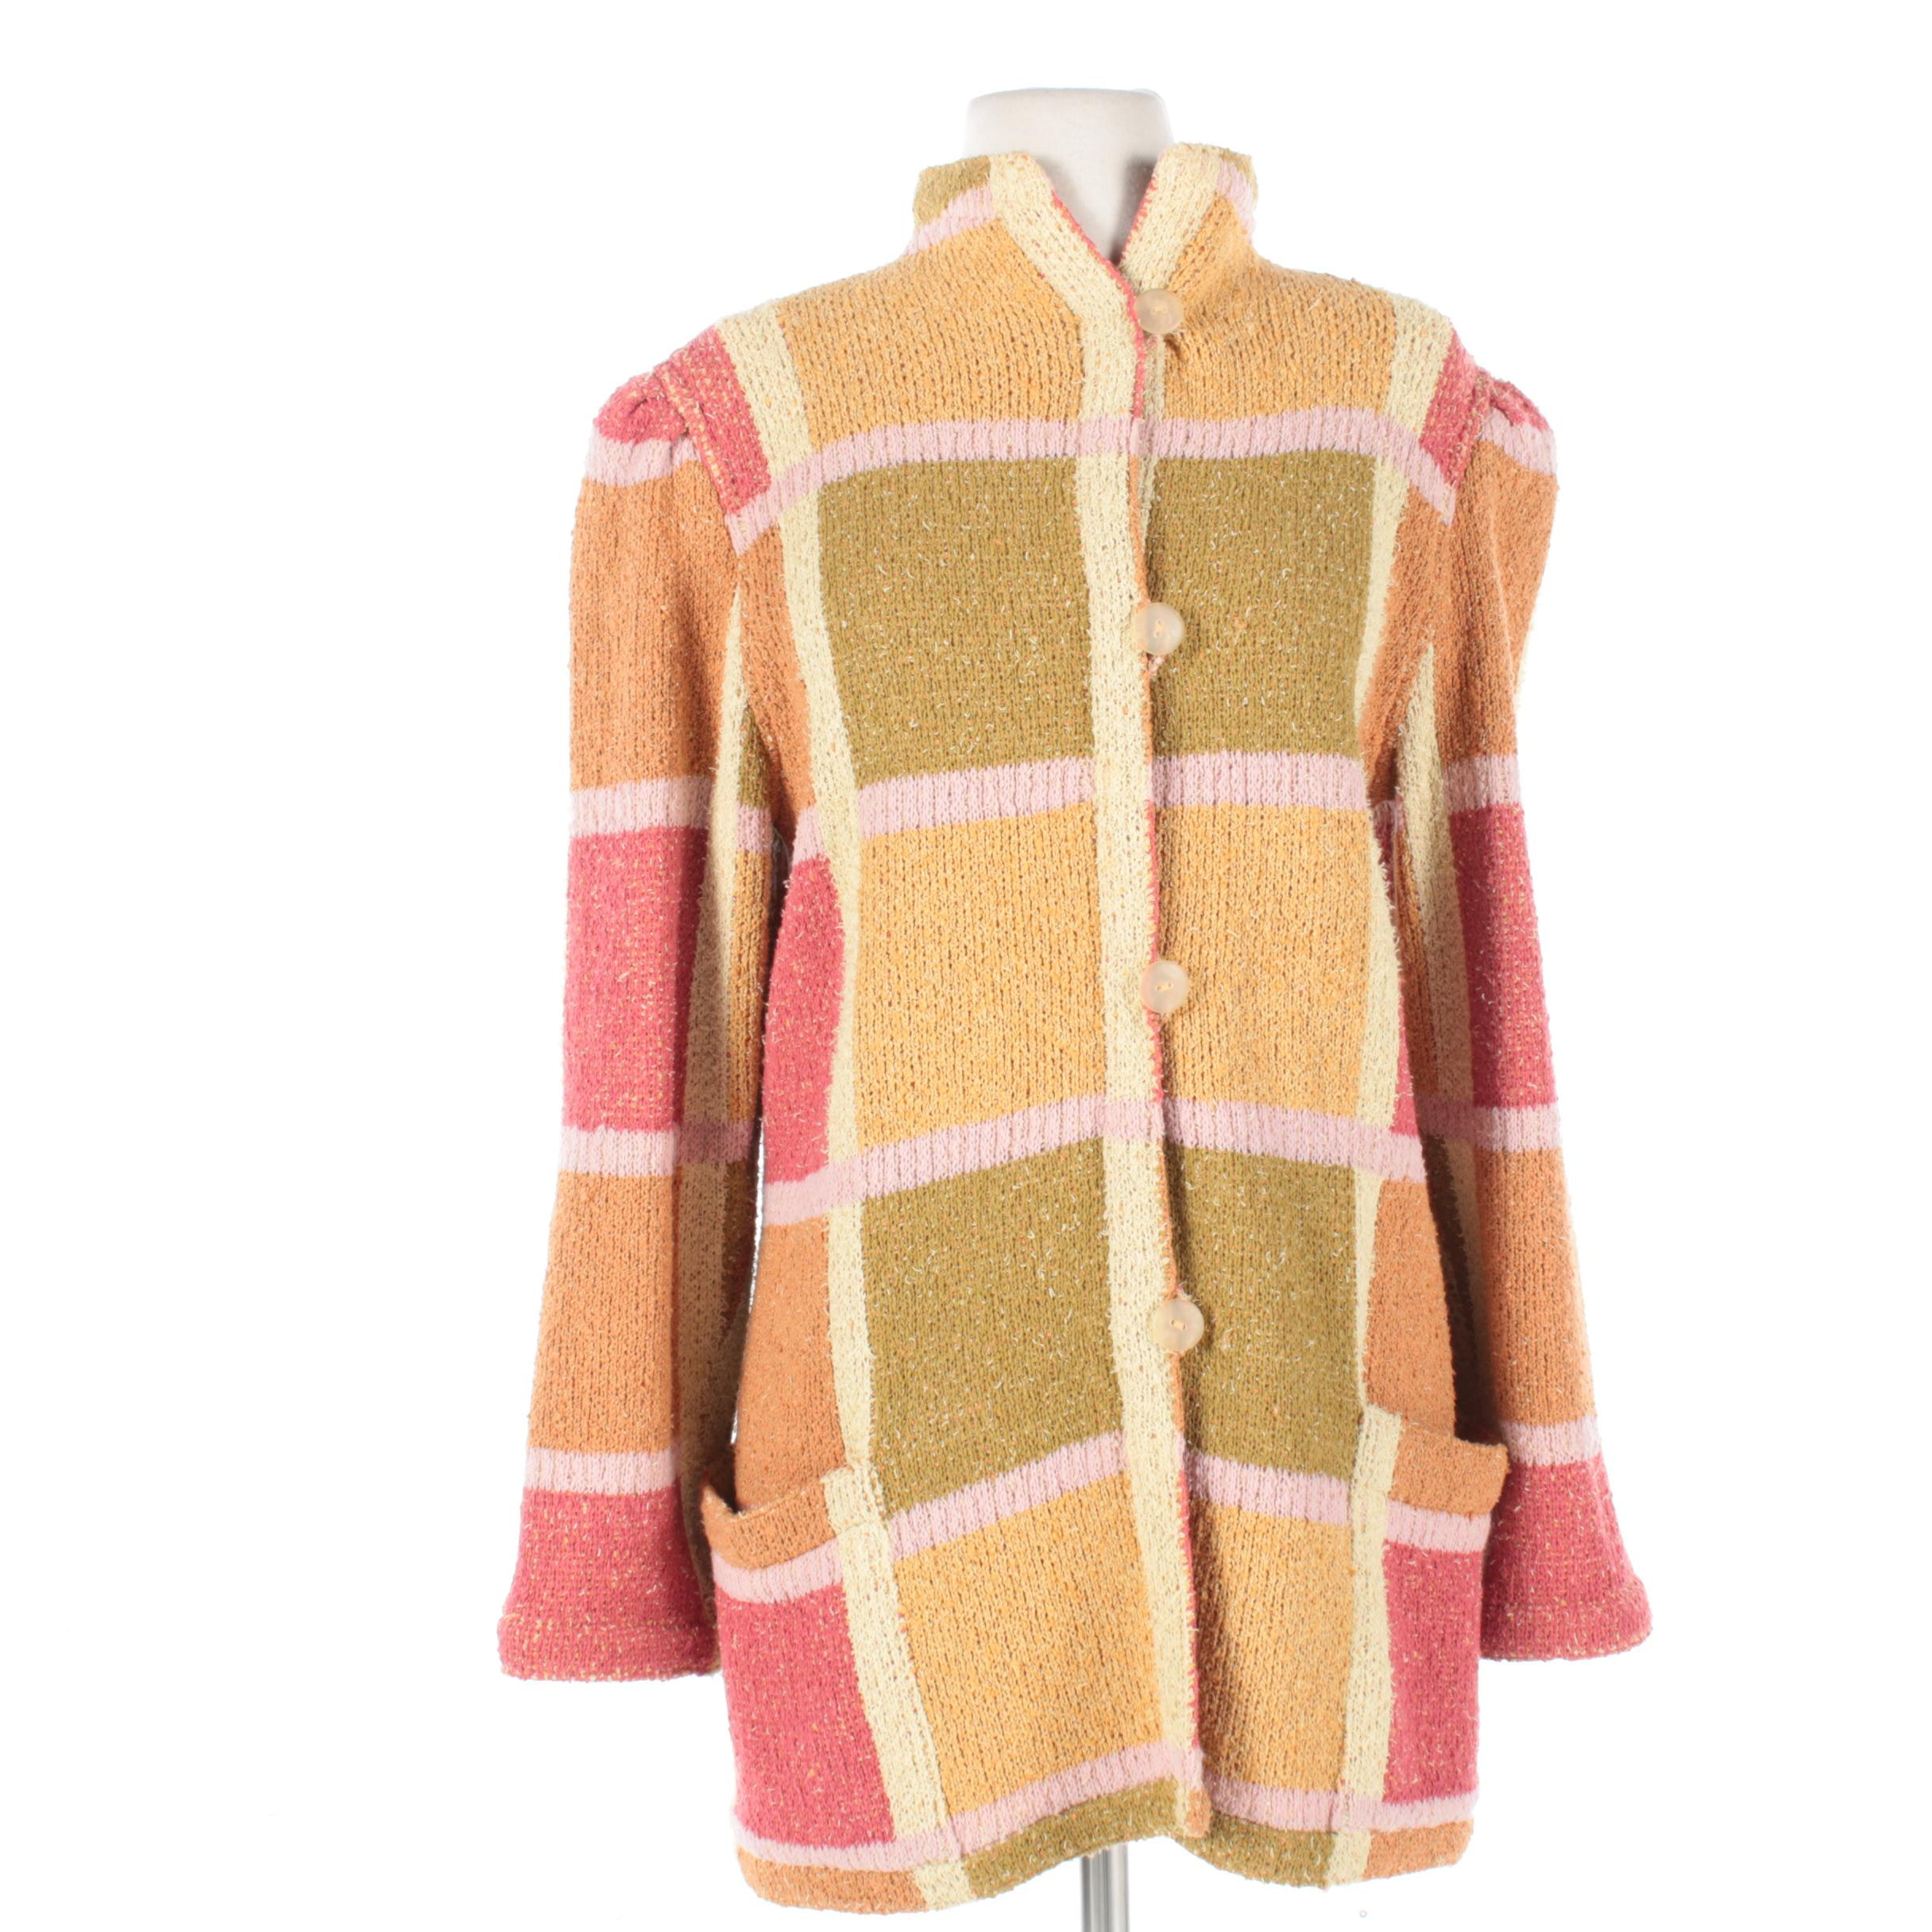 Women's Vintage Missoni for Bullock's Knit Jacket